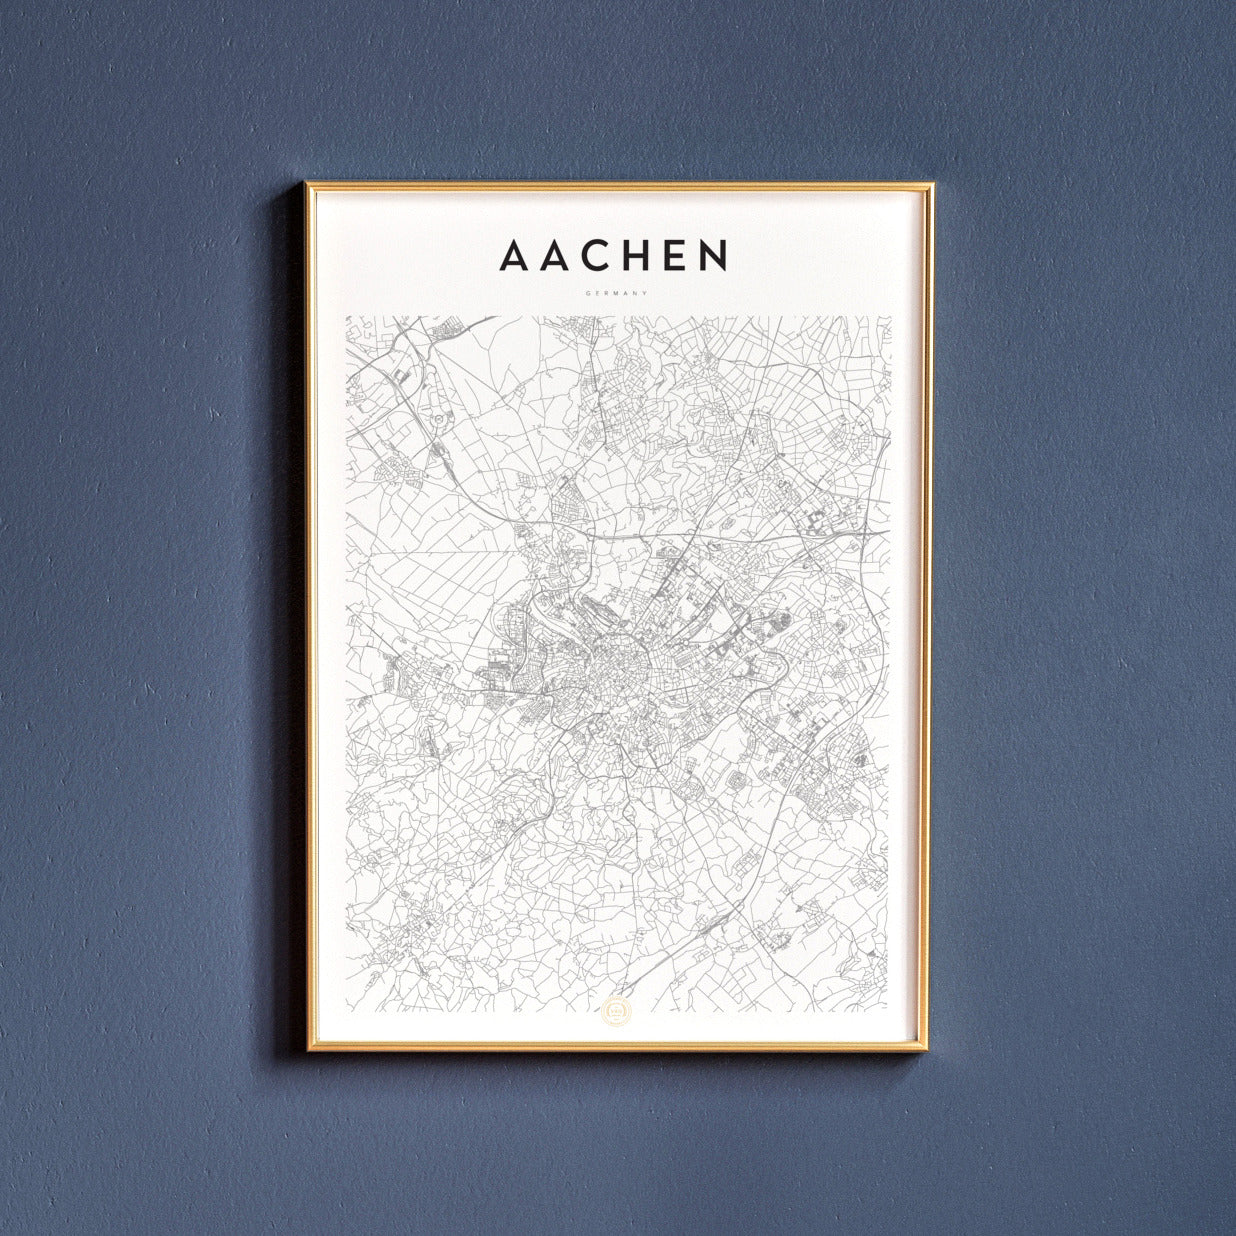 Map poster of Aachen, Germany